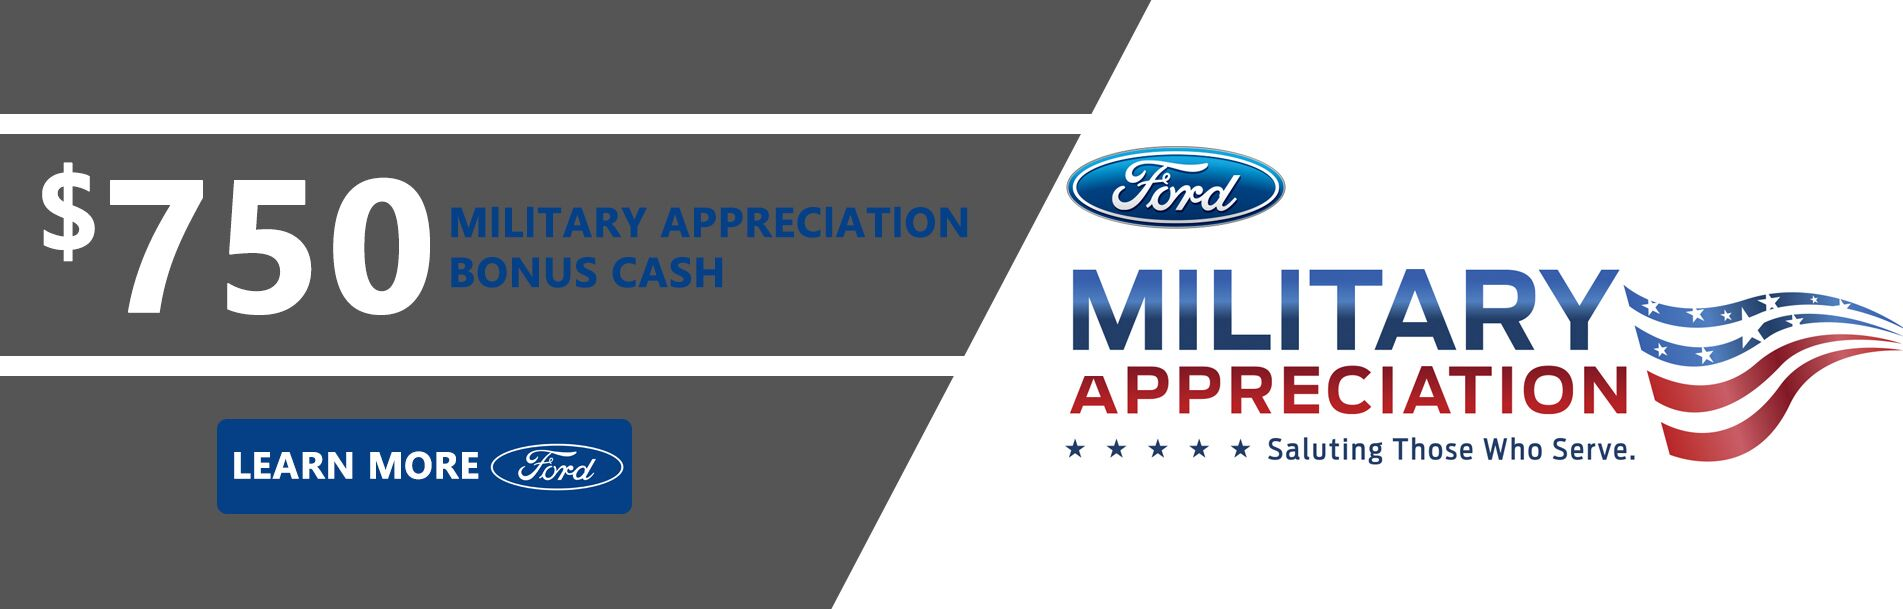 Ford Military Appreciation Bonus Cash